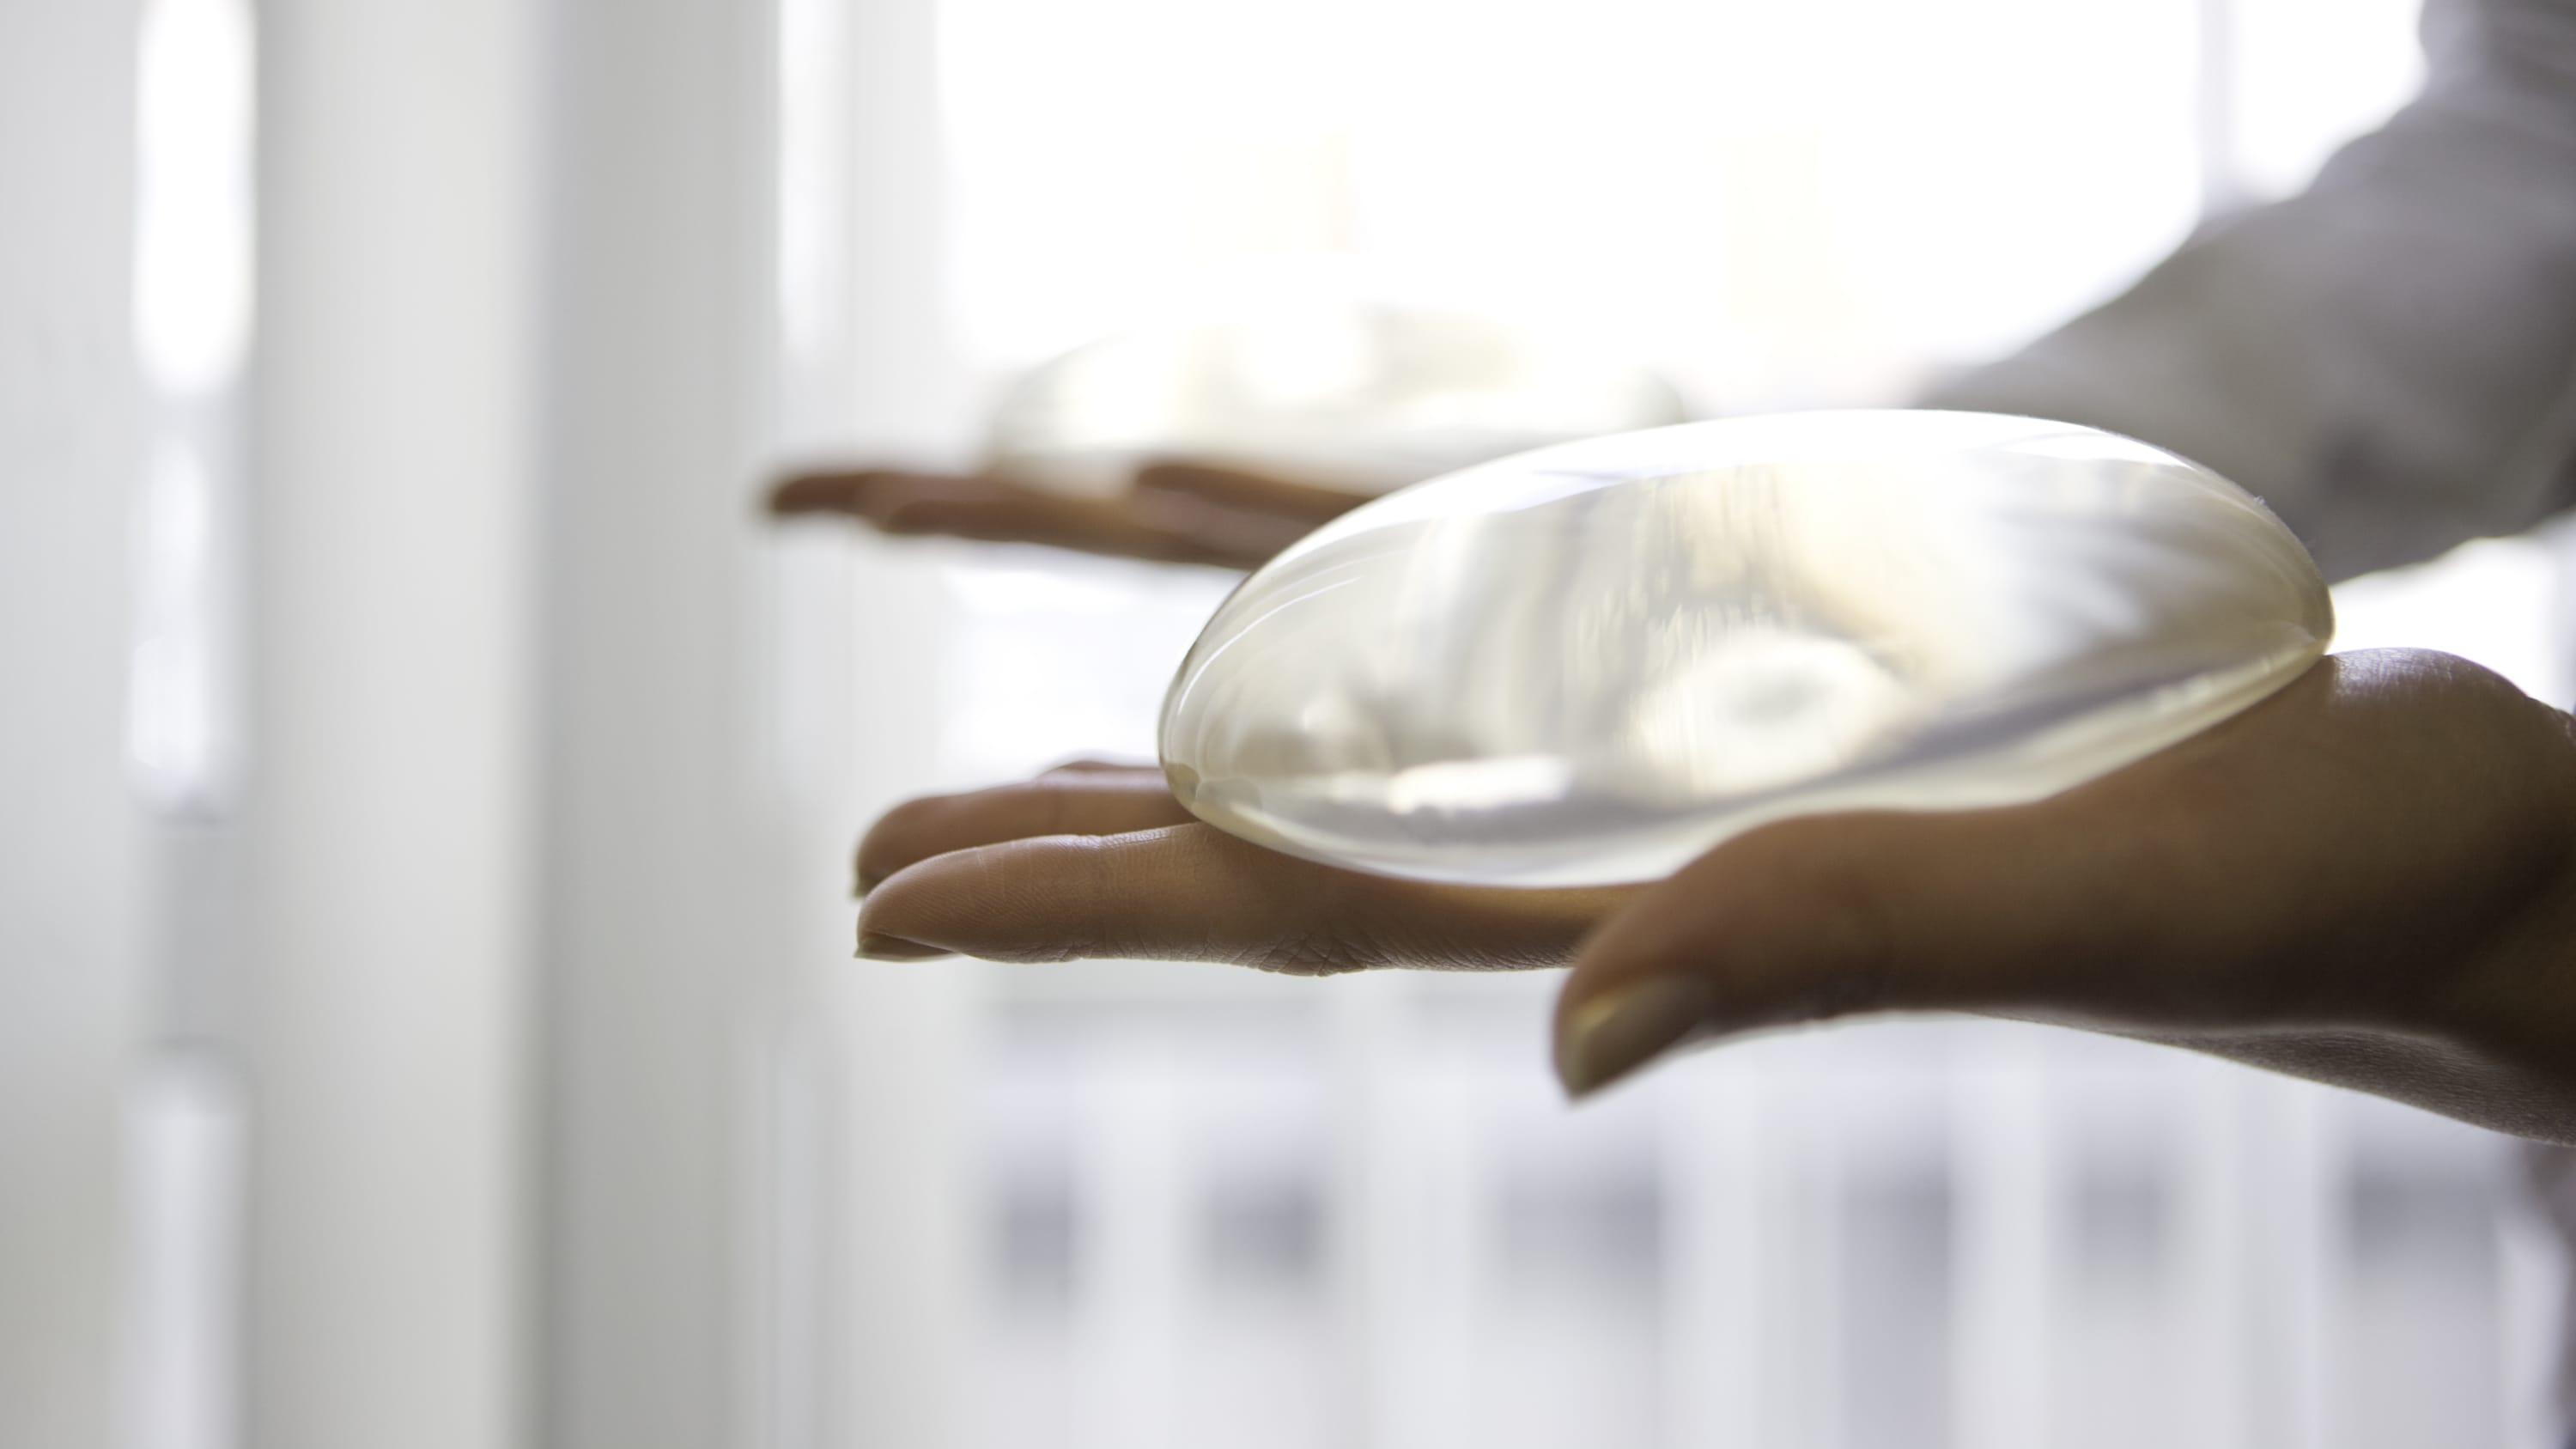 Hands holding a round, silicone breast implant.